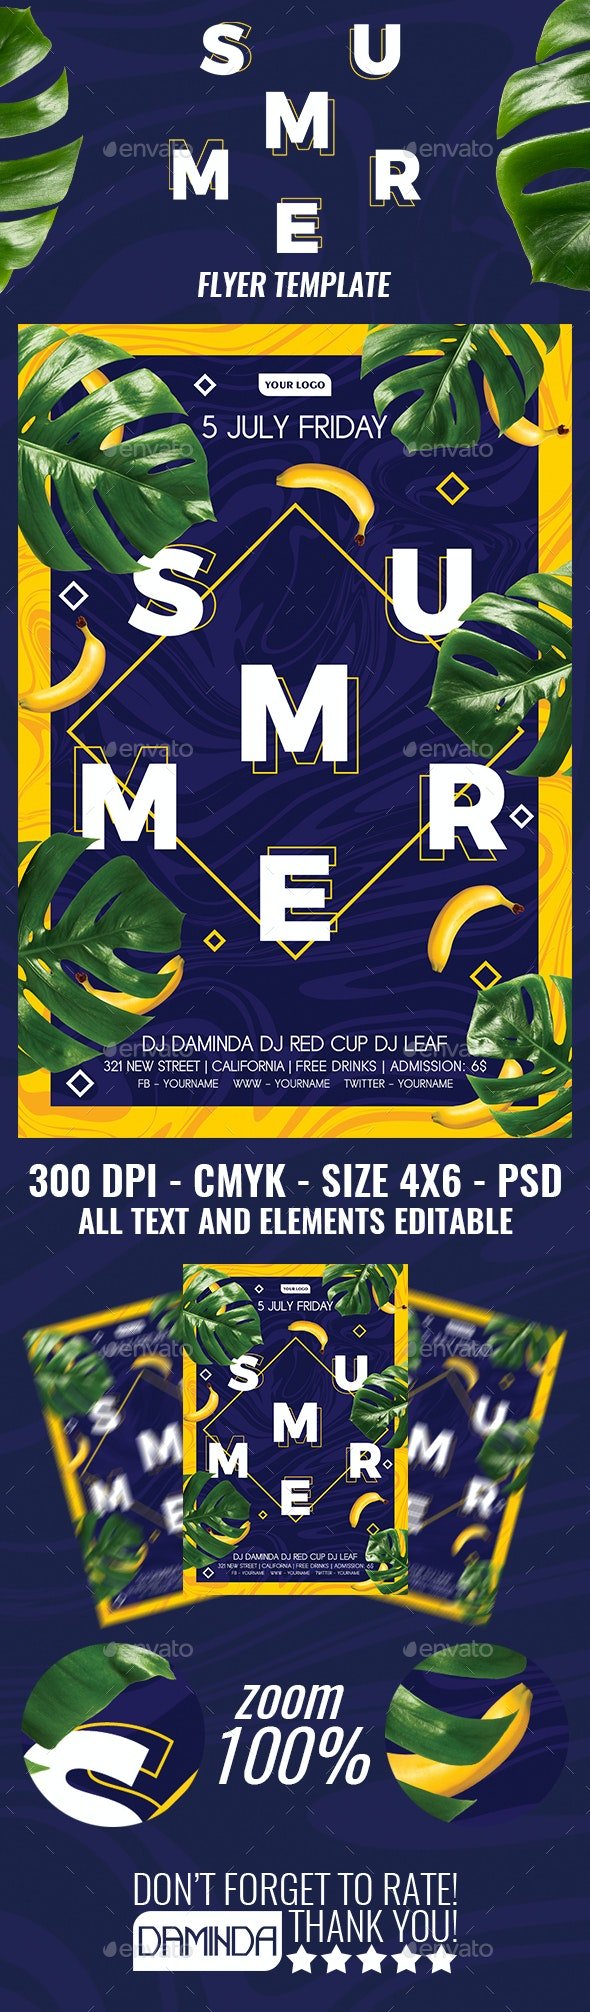 Summer Flyer Template 2019 2 - Clubs & Parties Events